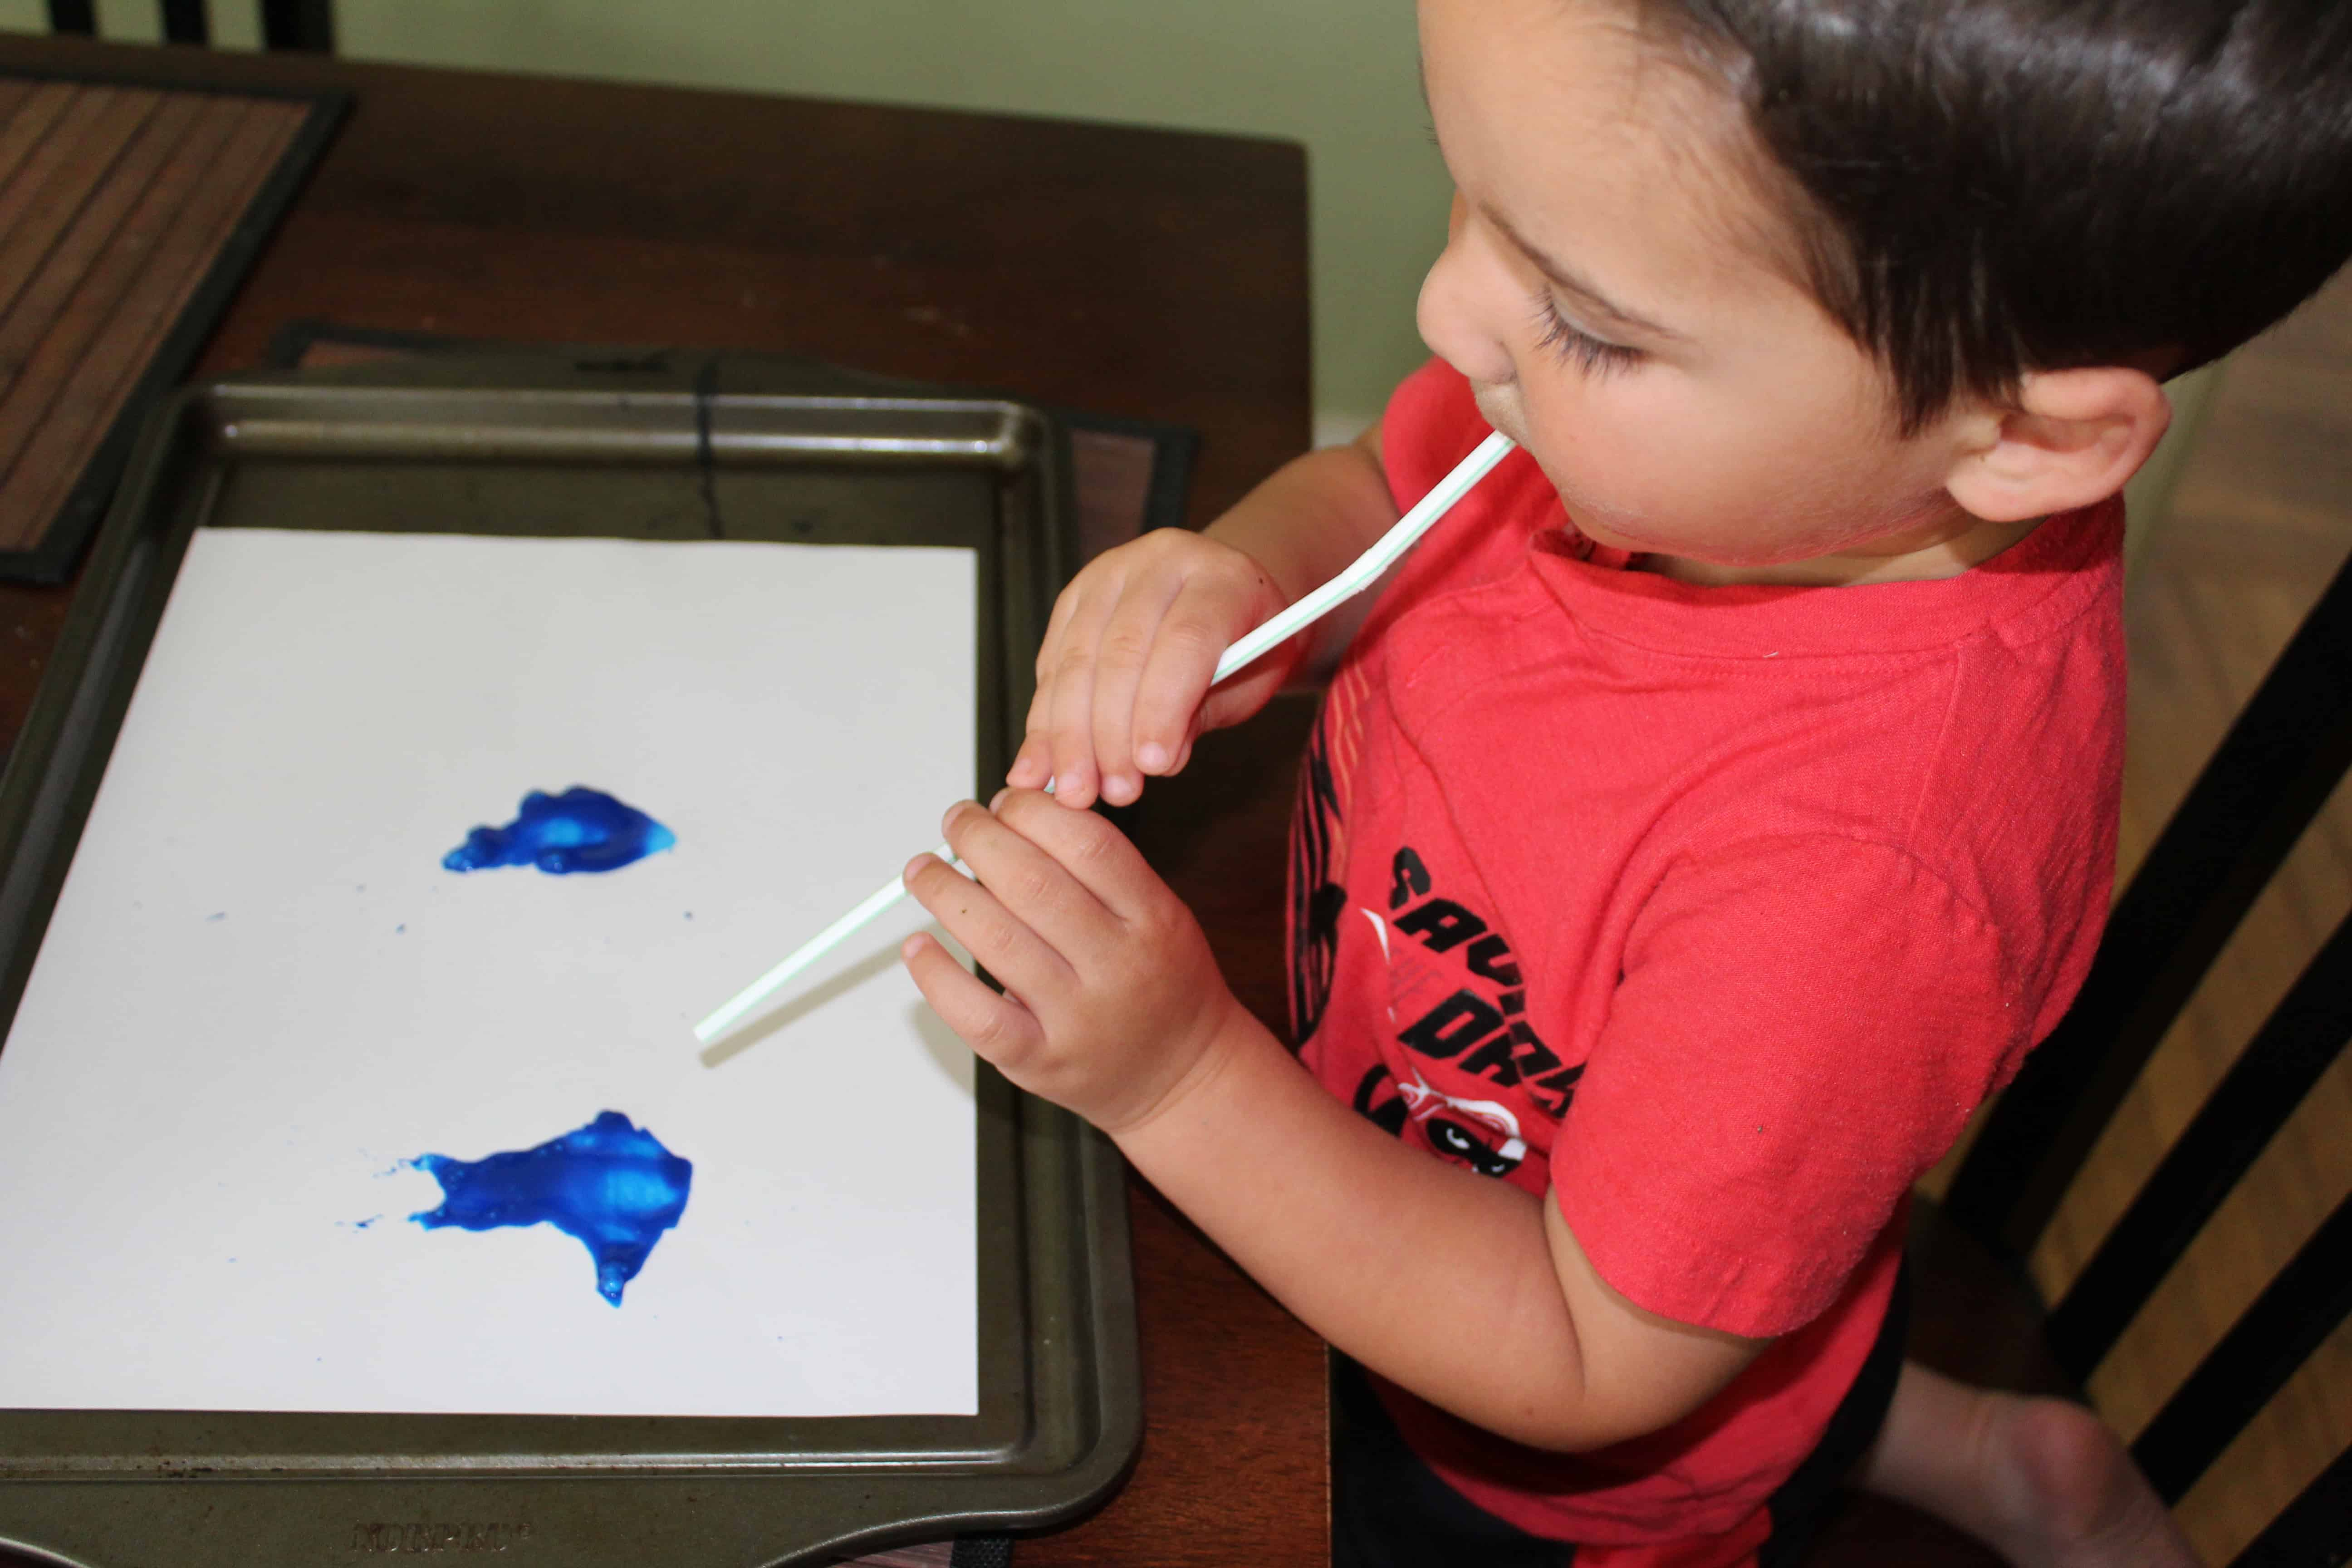 Toddler blowing pain patterns on a white sheet of paper.